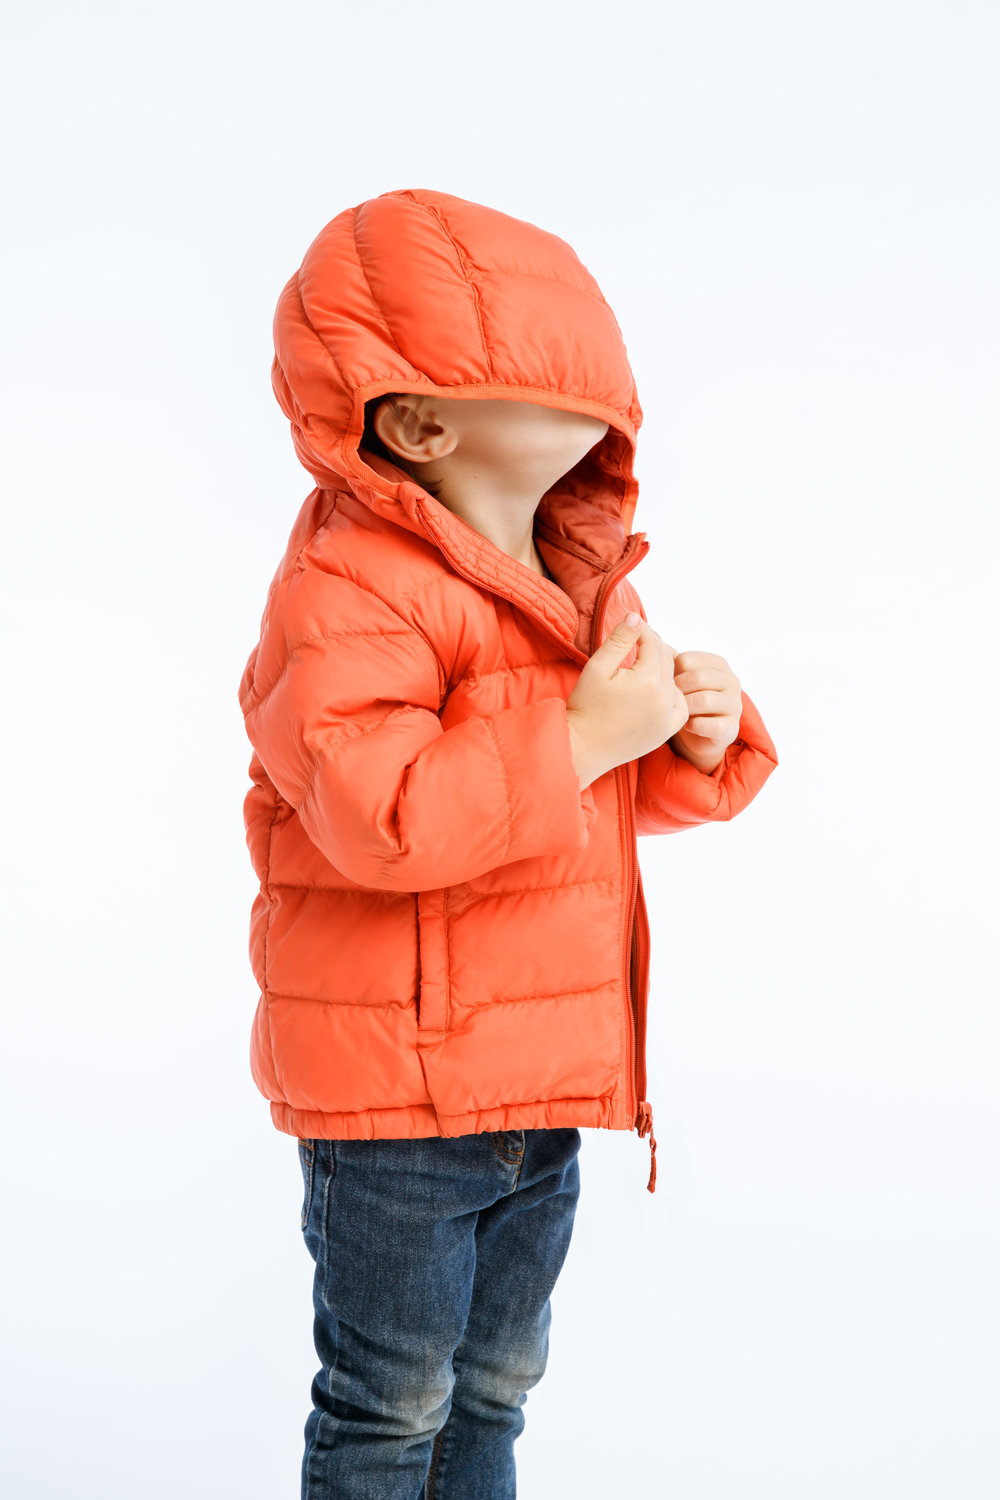 092916_MO_Ebay_Winter_Jacket_Kids_0072-V02.jpg